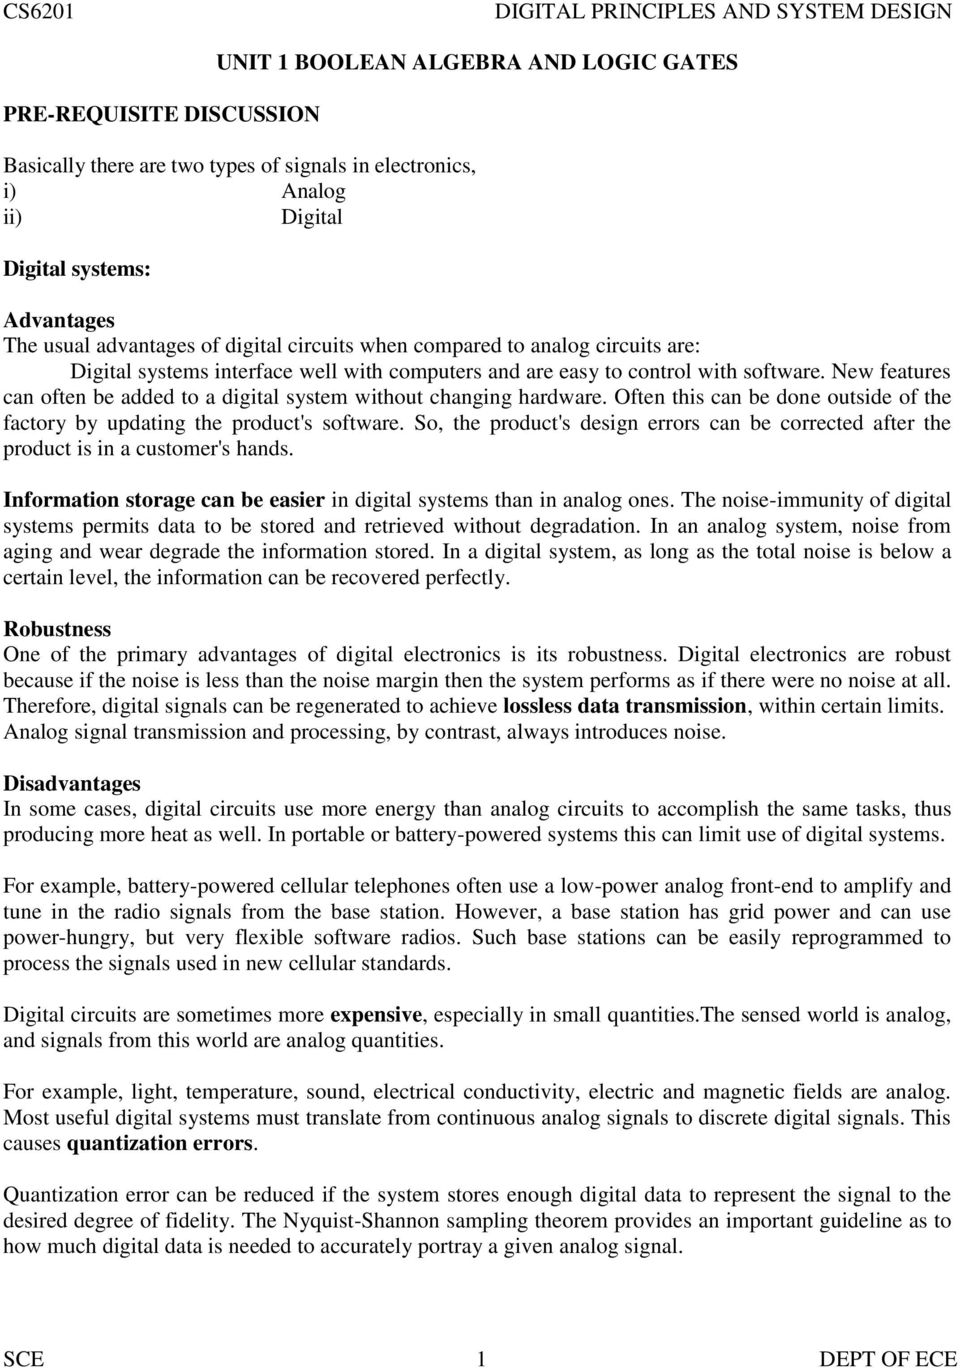 Digital principles and system design by godse